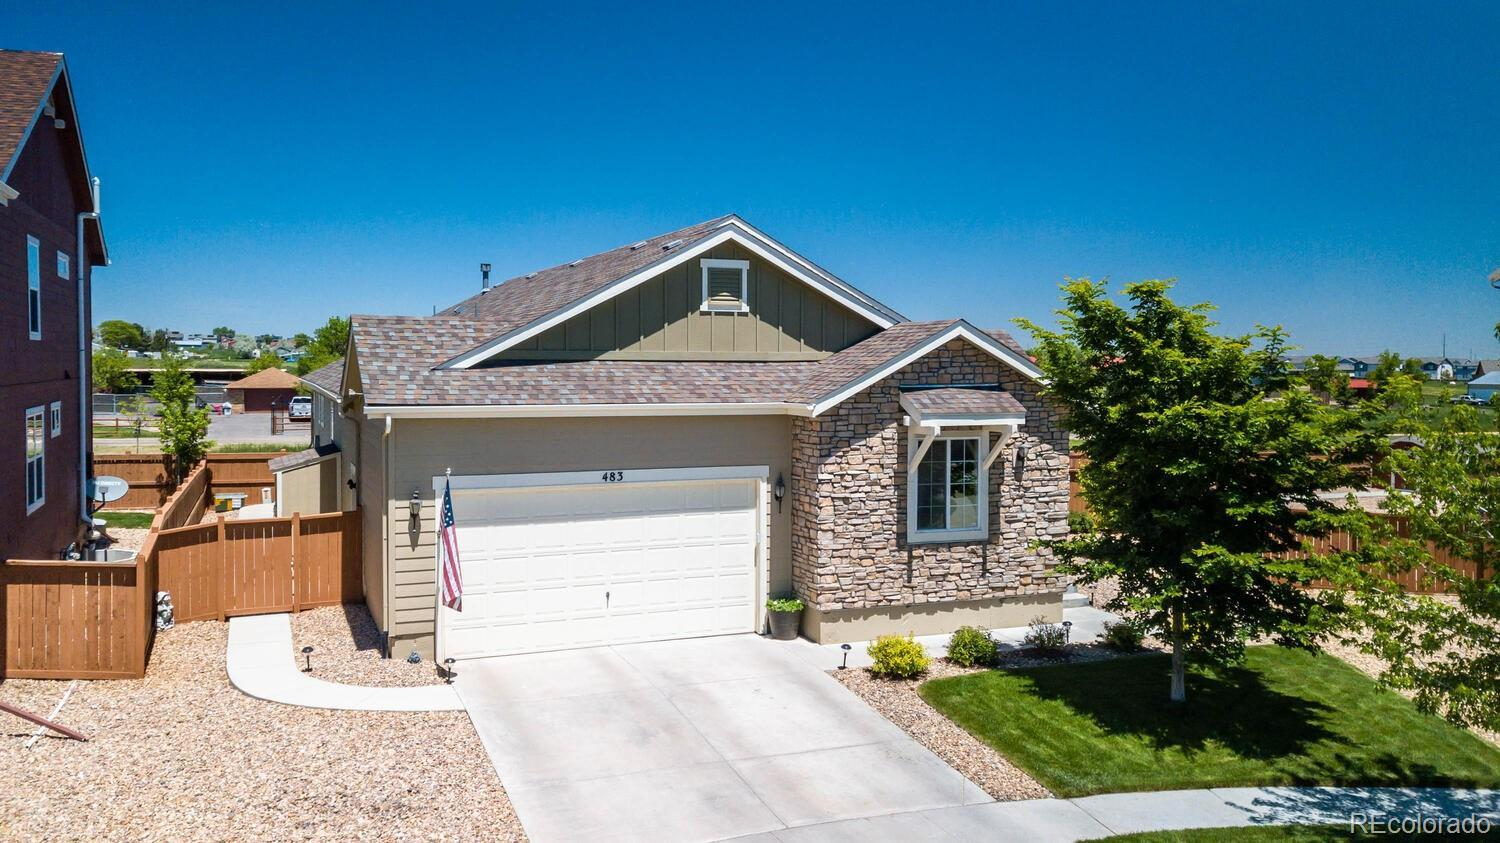 483 W 172nd Place, Broomfield, CO 80023 - #: 3801657